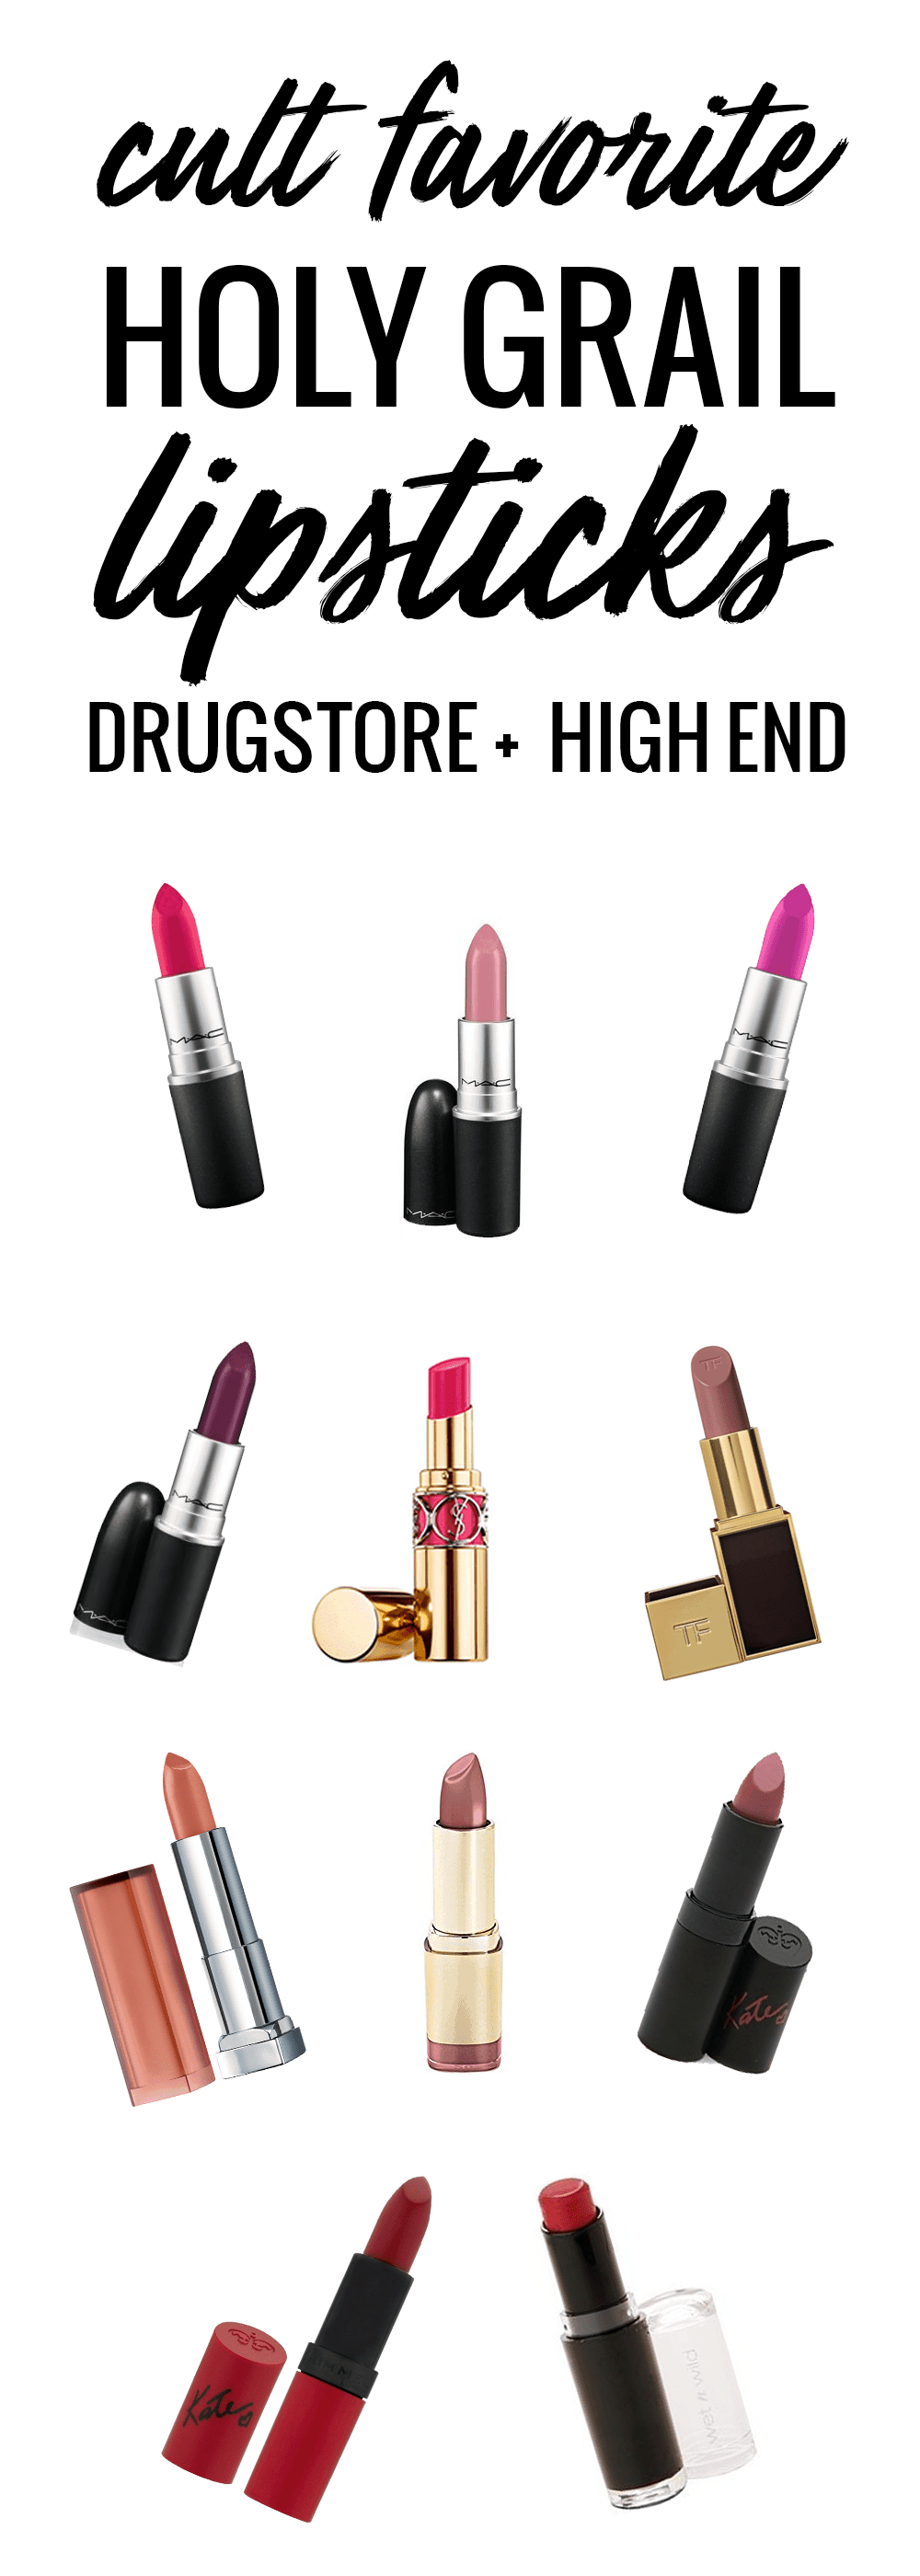 cult favorite holy grail lipsticks - drugstore and high end!